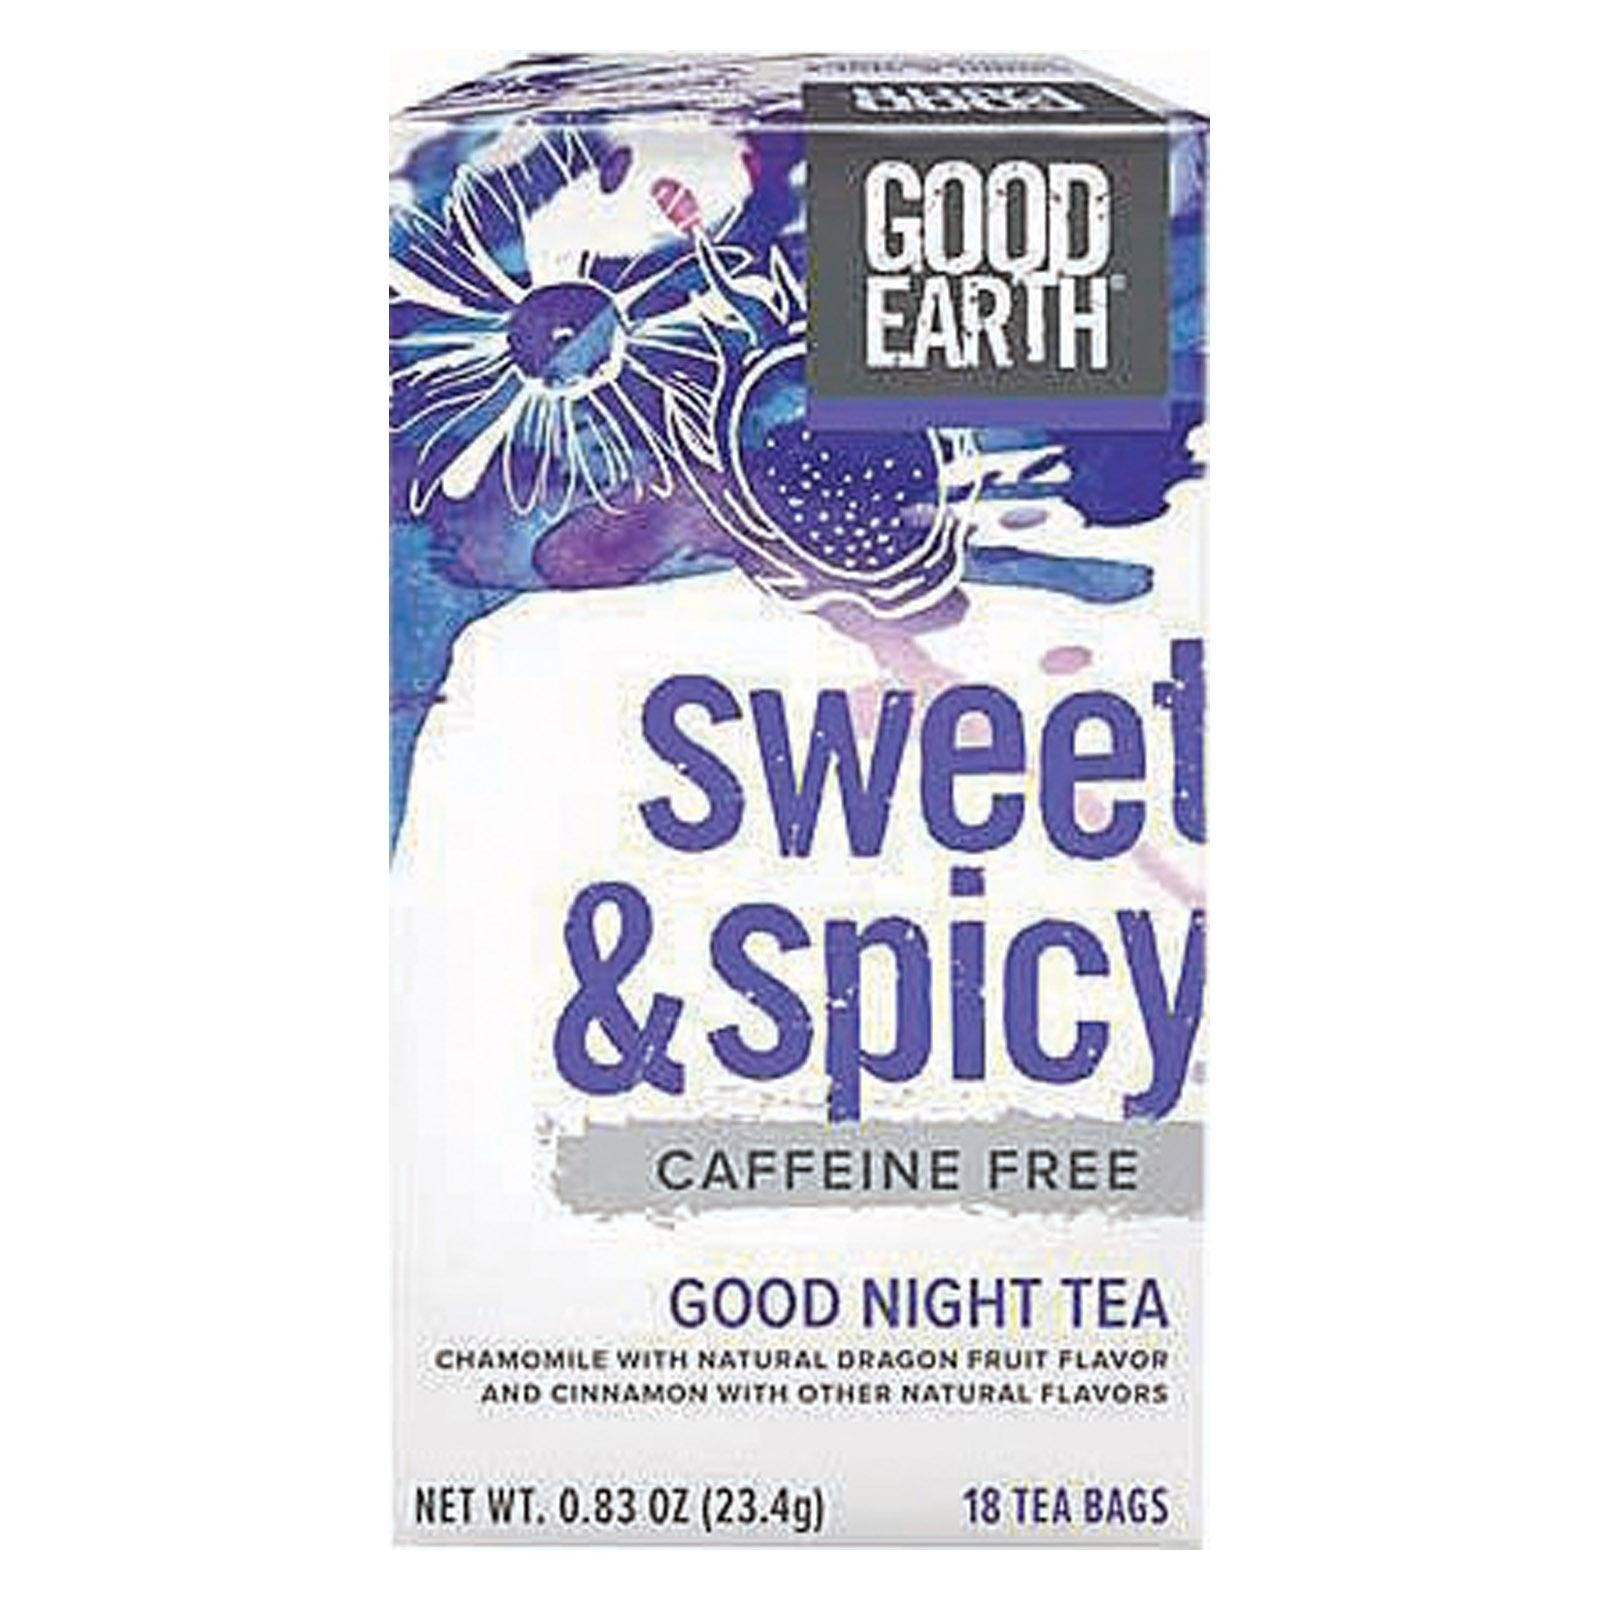 Good Earth Good Night Tea -sweet & Spicy Caffeine Free - pack of 6 - 18 Bag